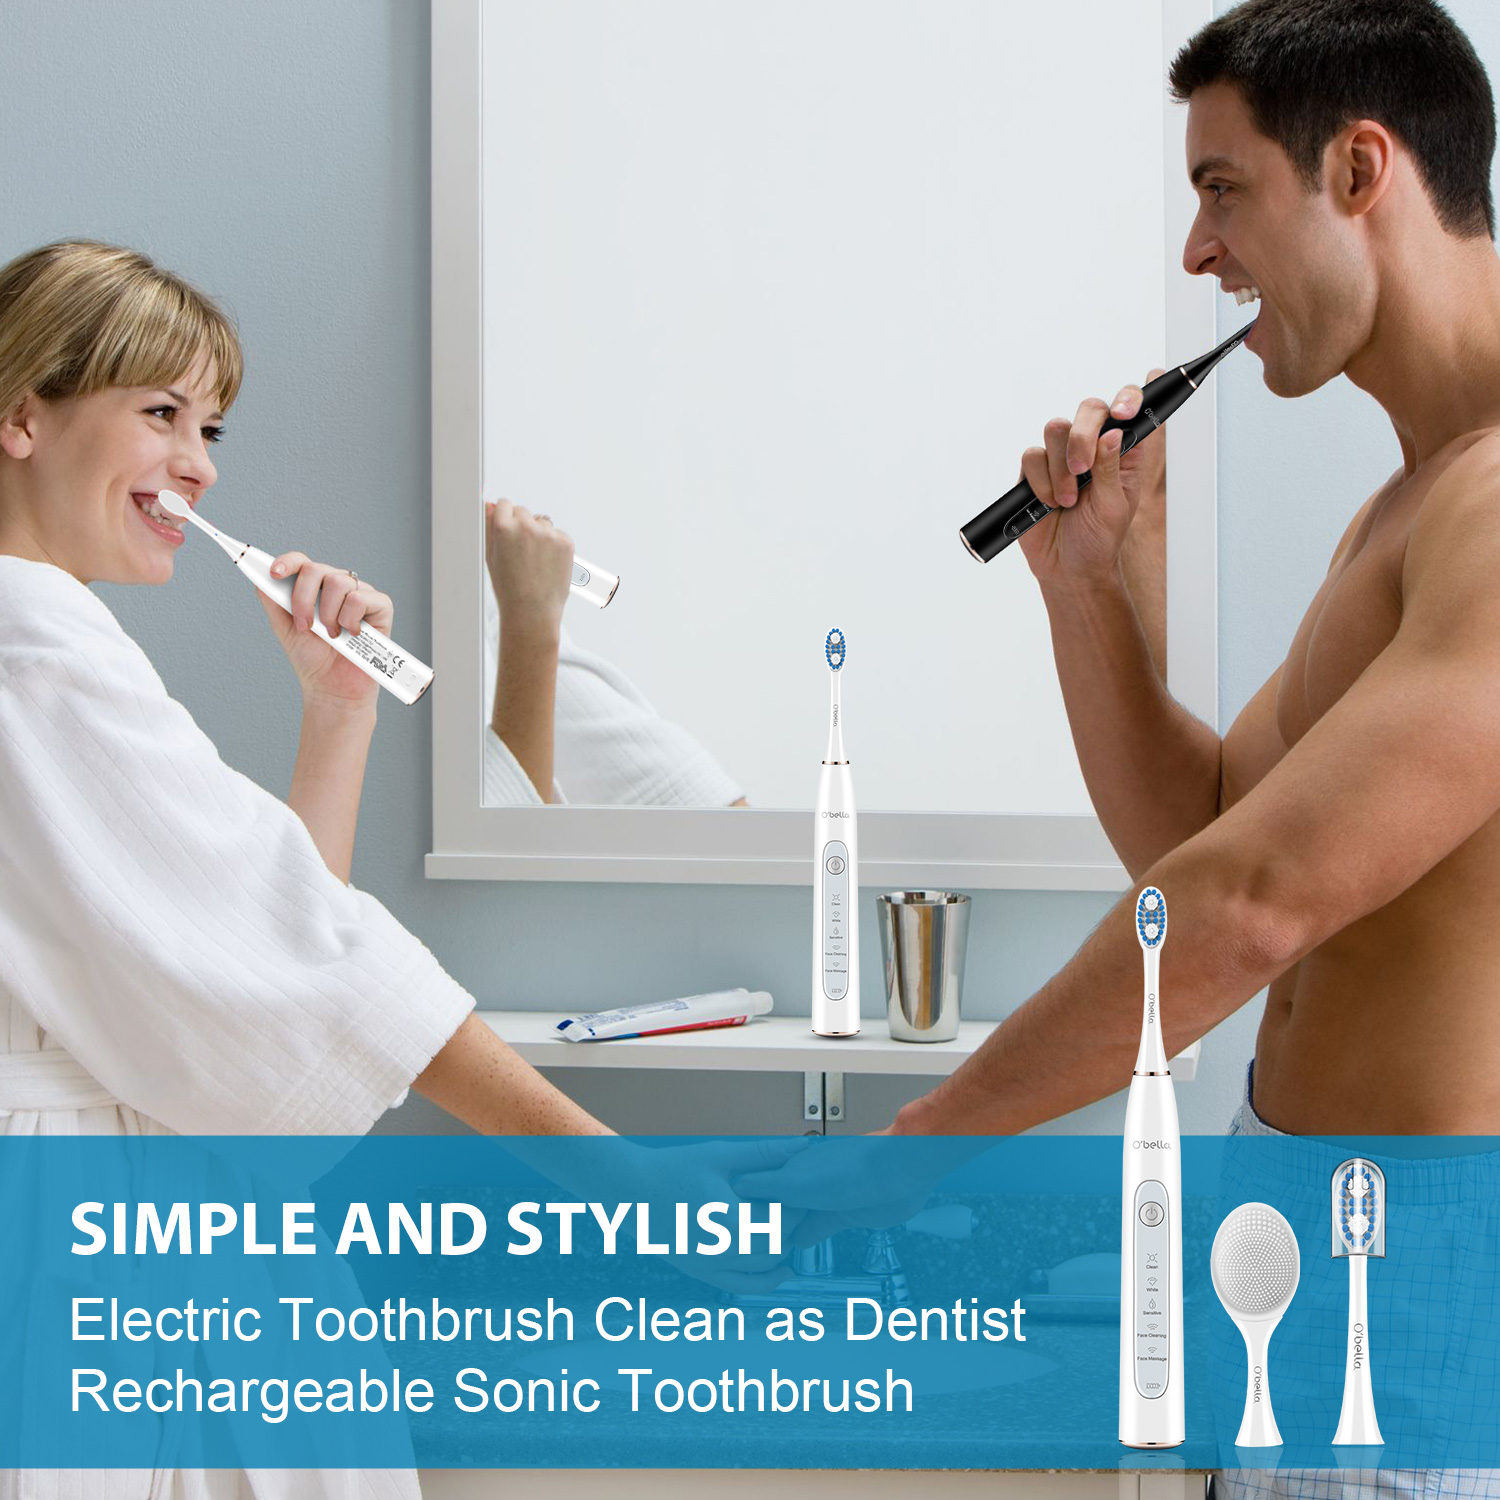 O'bella T10 Electric Toothbrush USB Rechargeable Sonic Electrric Toothbrush Upgraded Ultrasonic Toothbrush Face brush